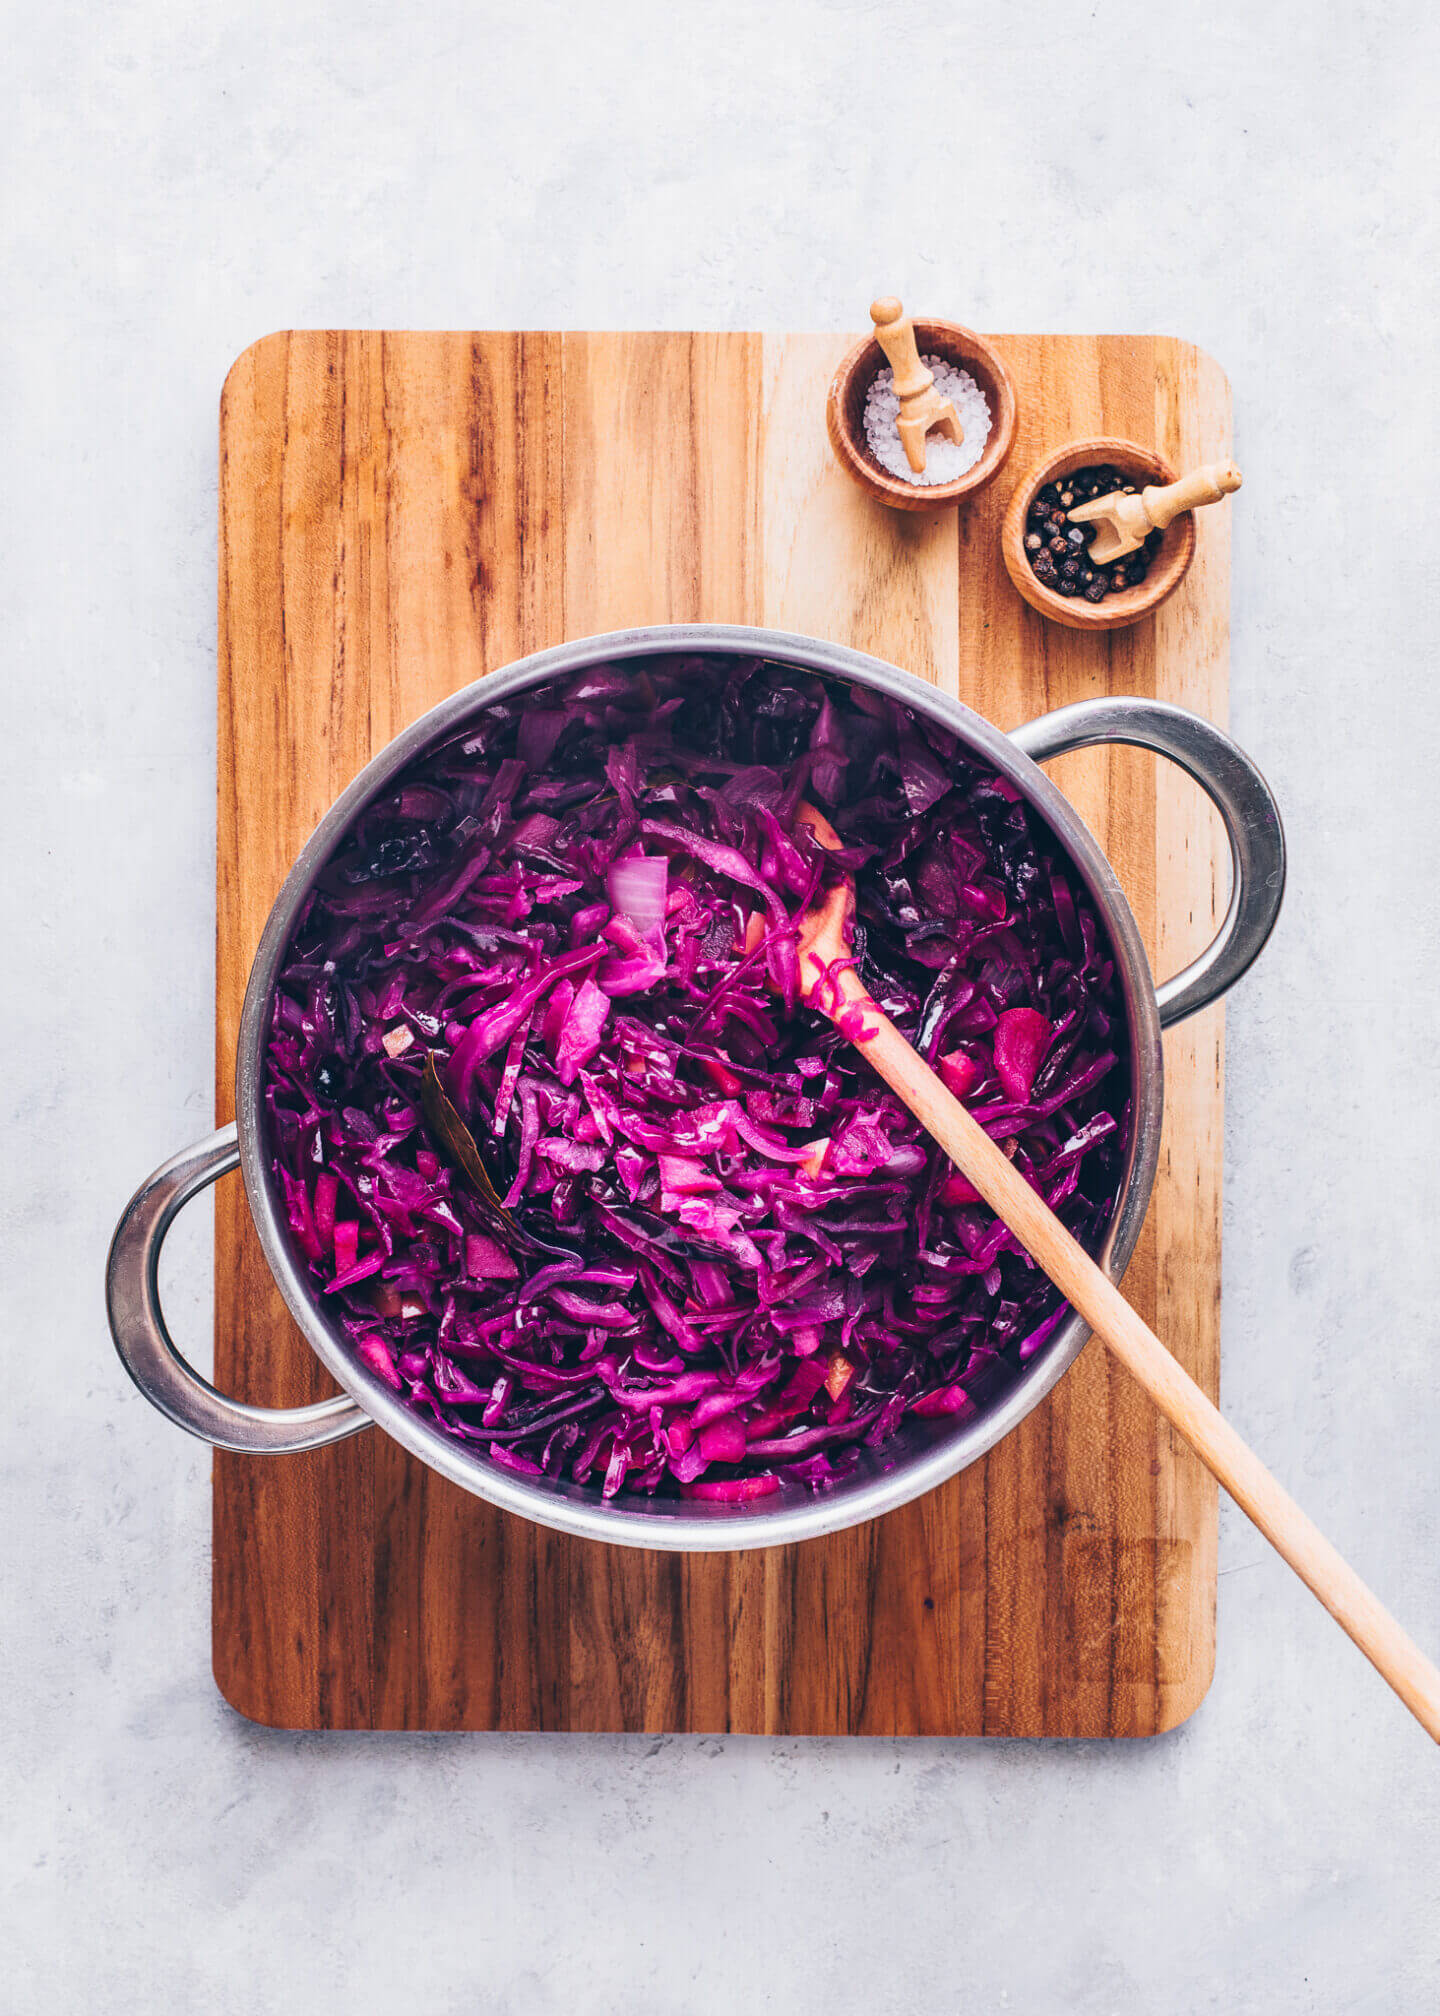 Homemade Braised Red Cabbage with Apples